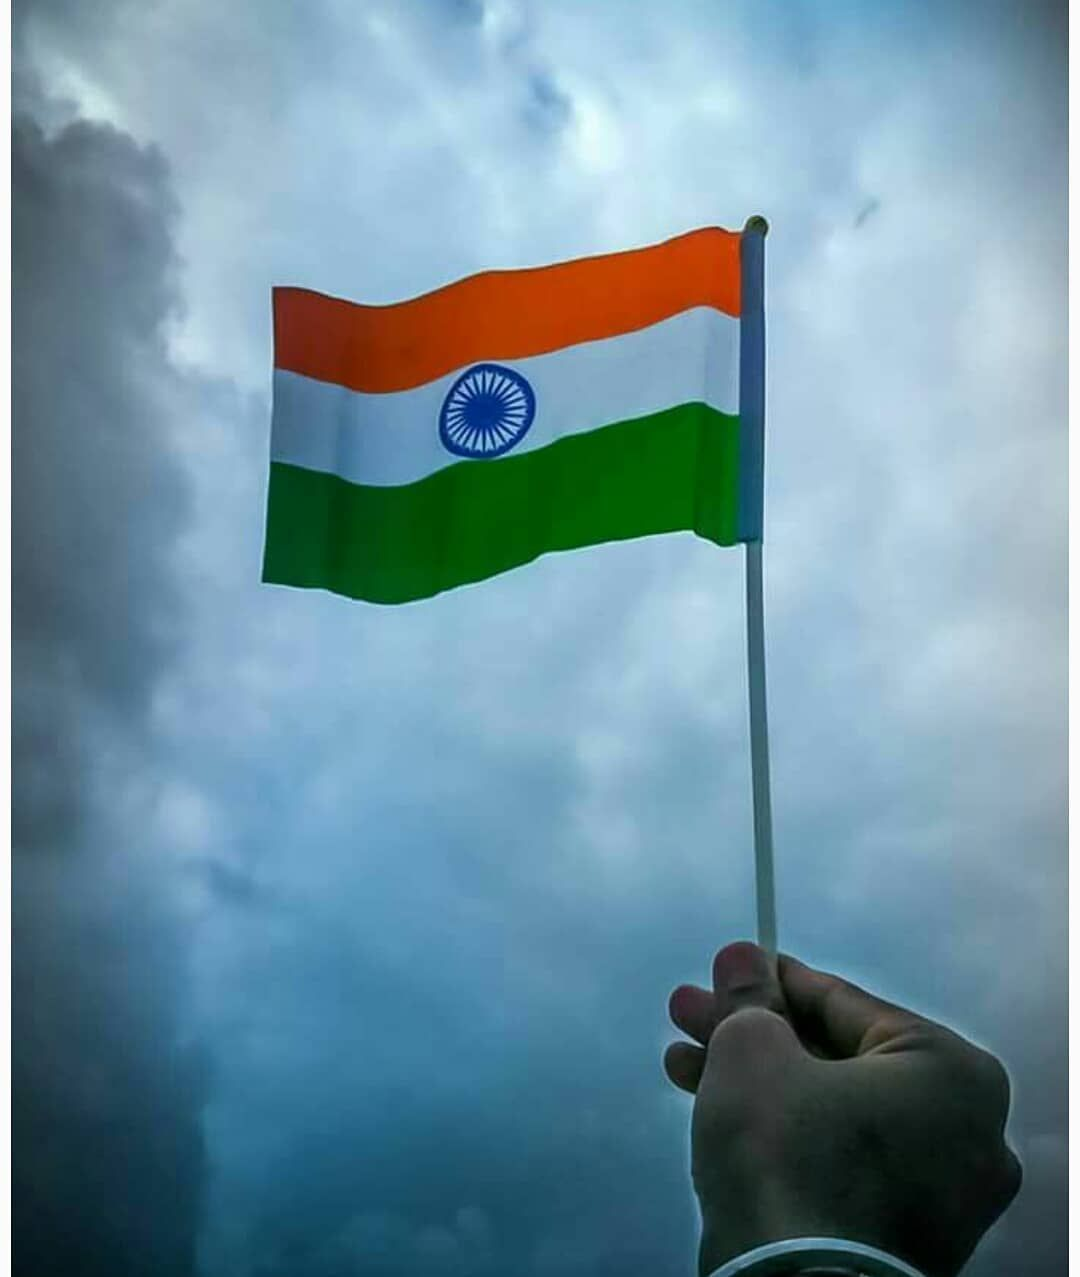 Pin By Bittu Kuamr On Indian Flag Happy Independence Day India Independence Day India Indian Flag Images